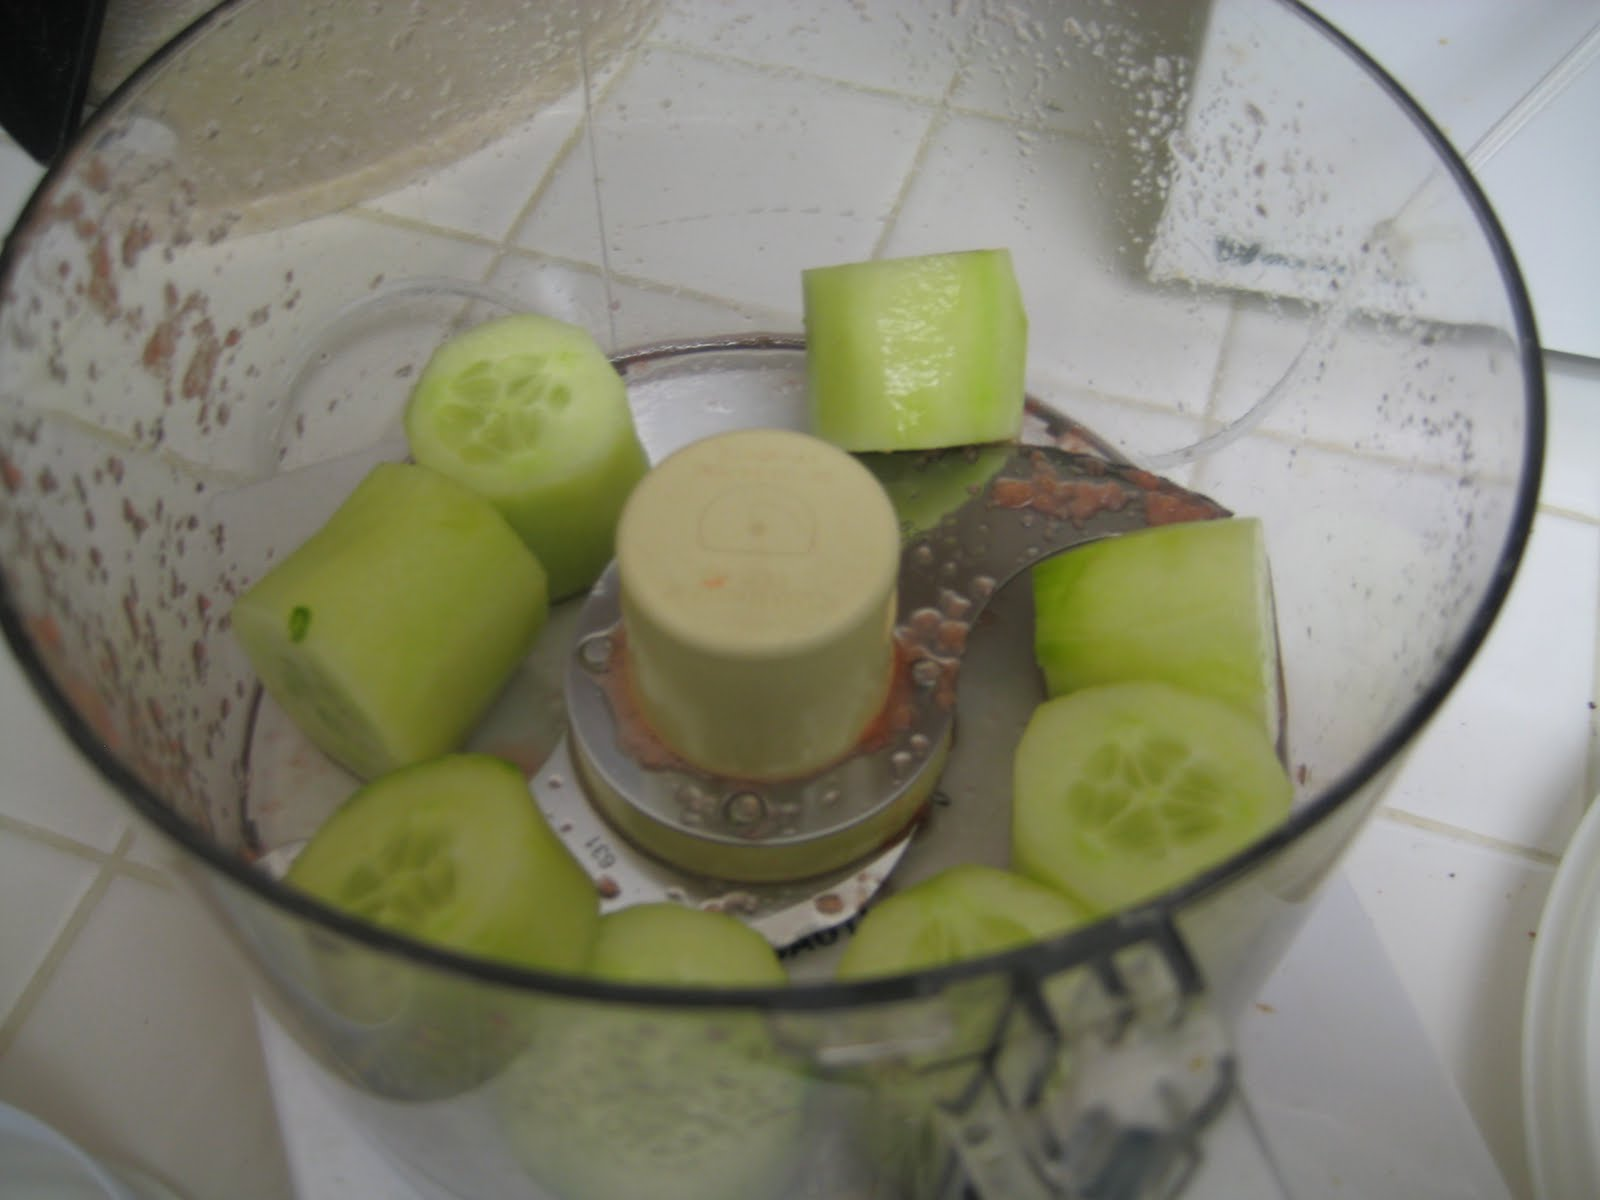 The Foodista Chronicles: Watermelon-Cucumber Cooler